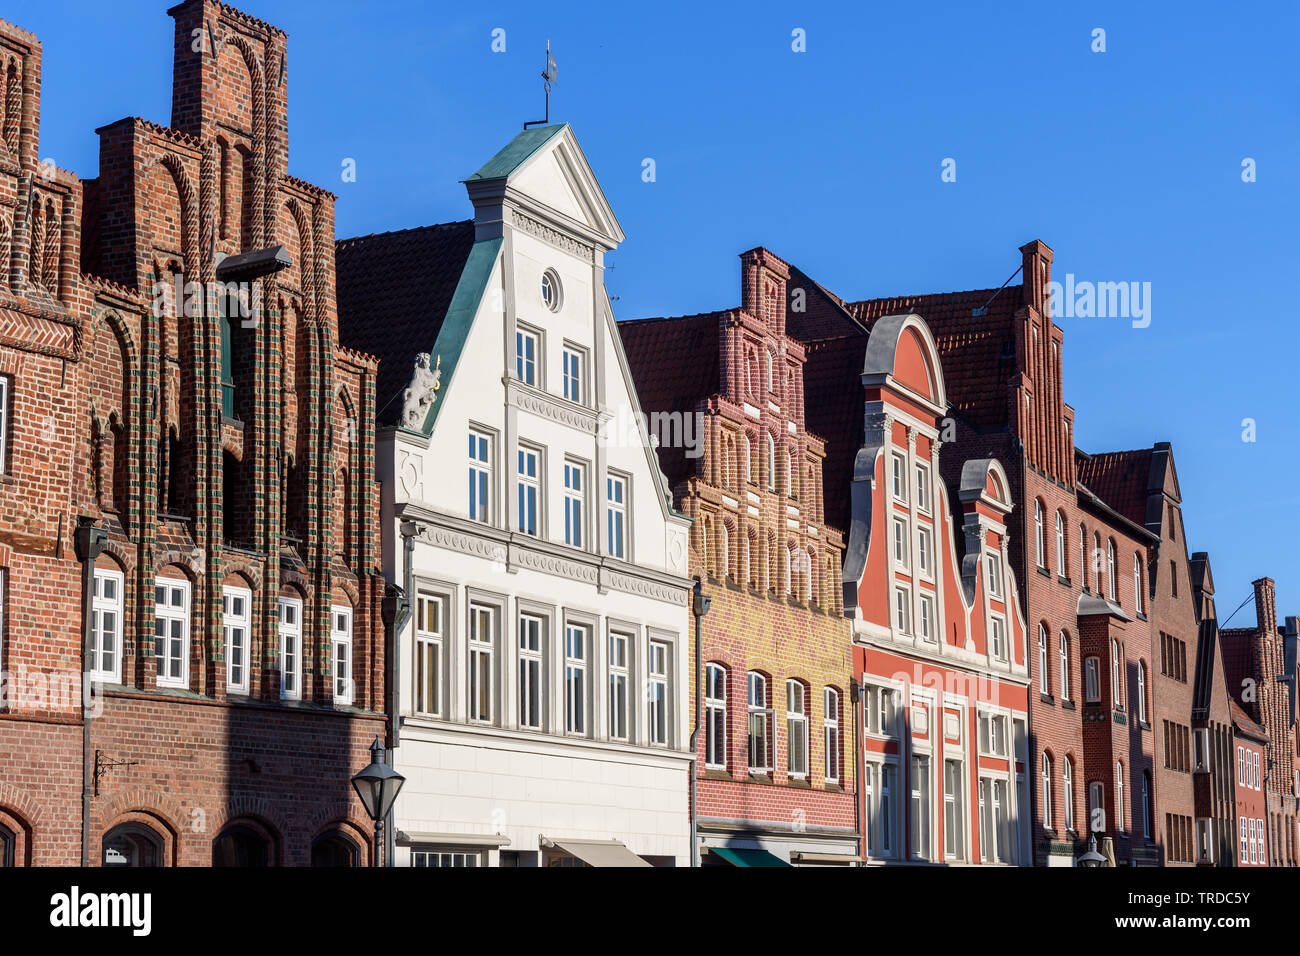 Medieval old brick buildings in Luneburg. Lower Saxony. Germany Stock Photo